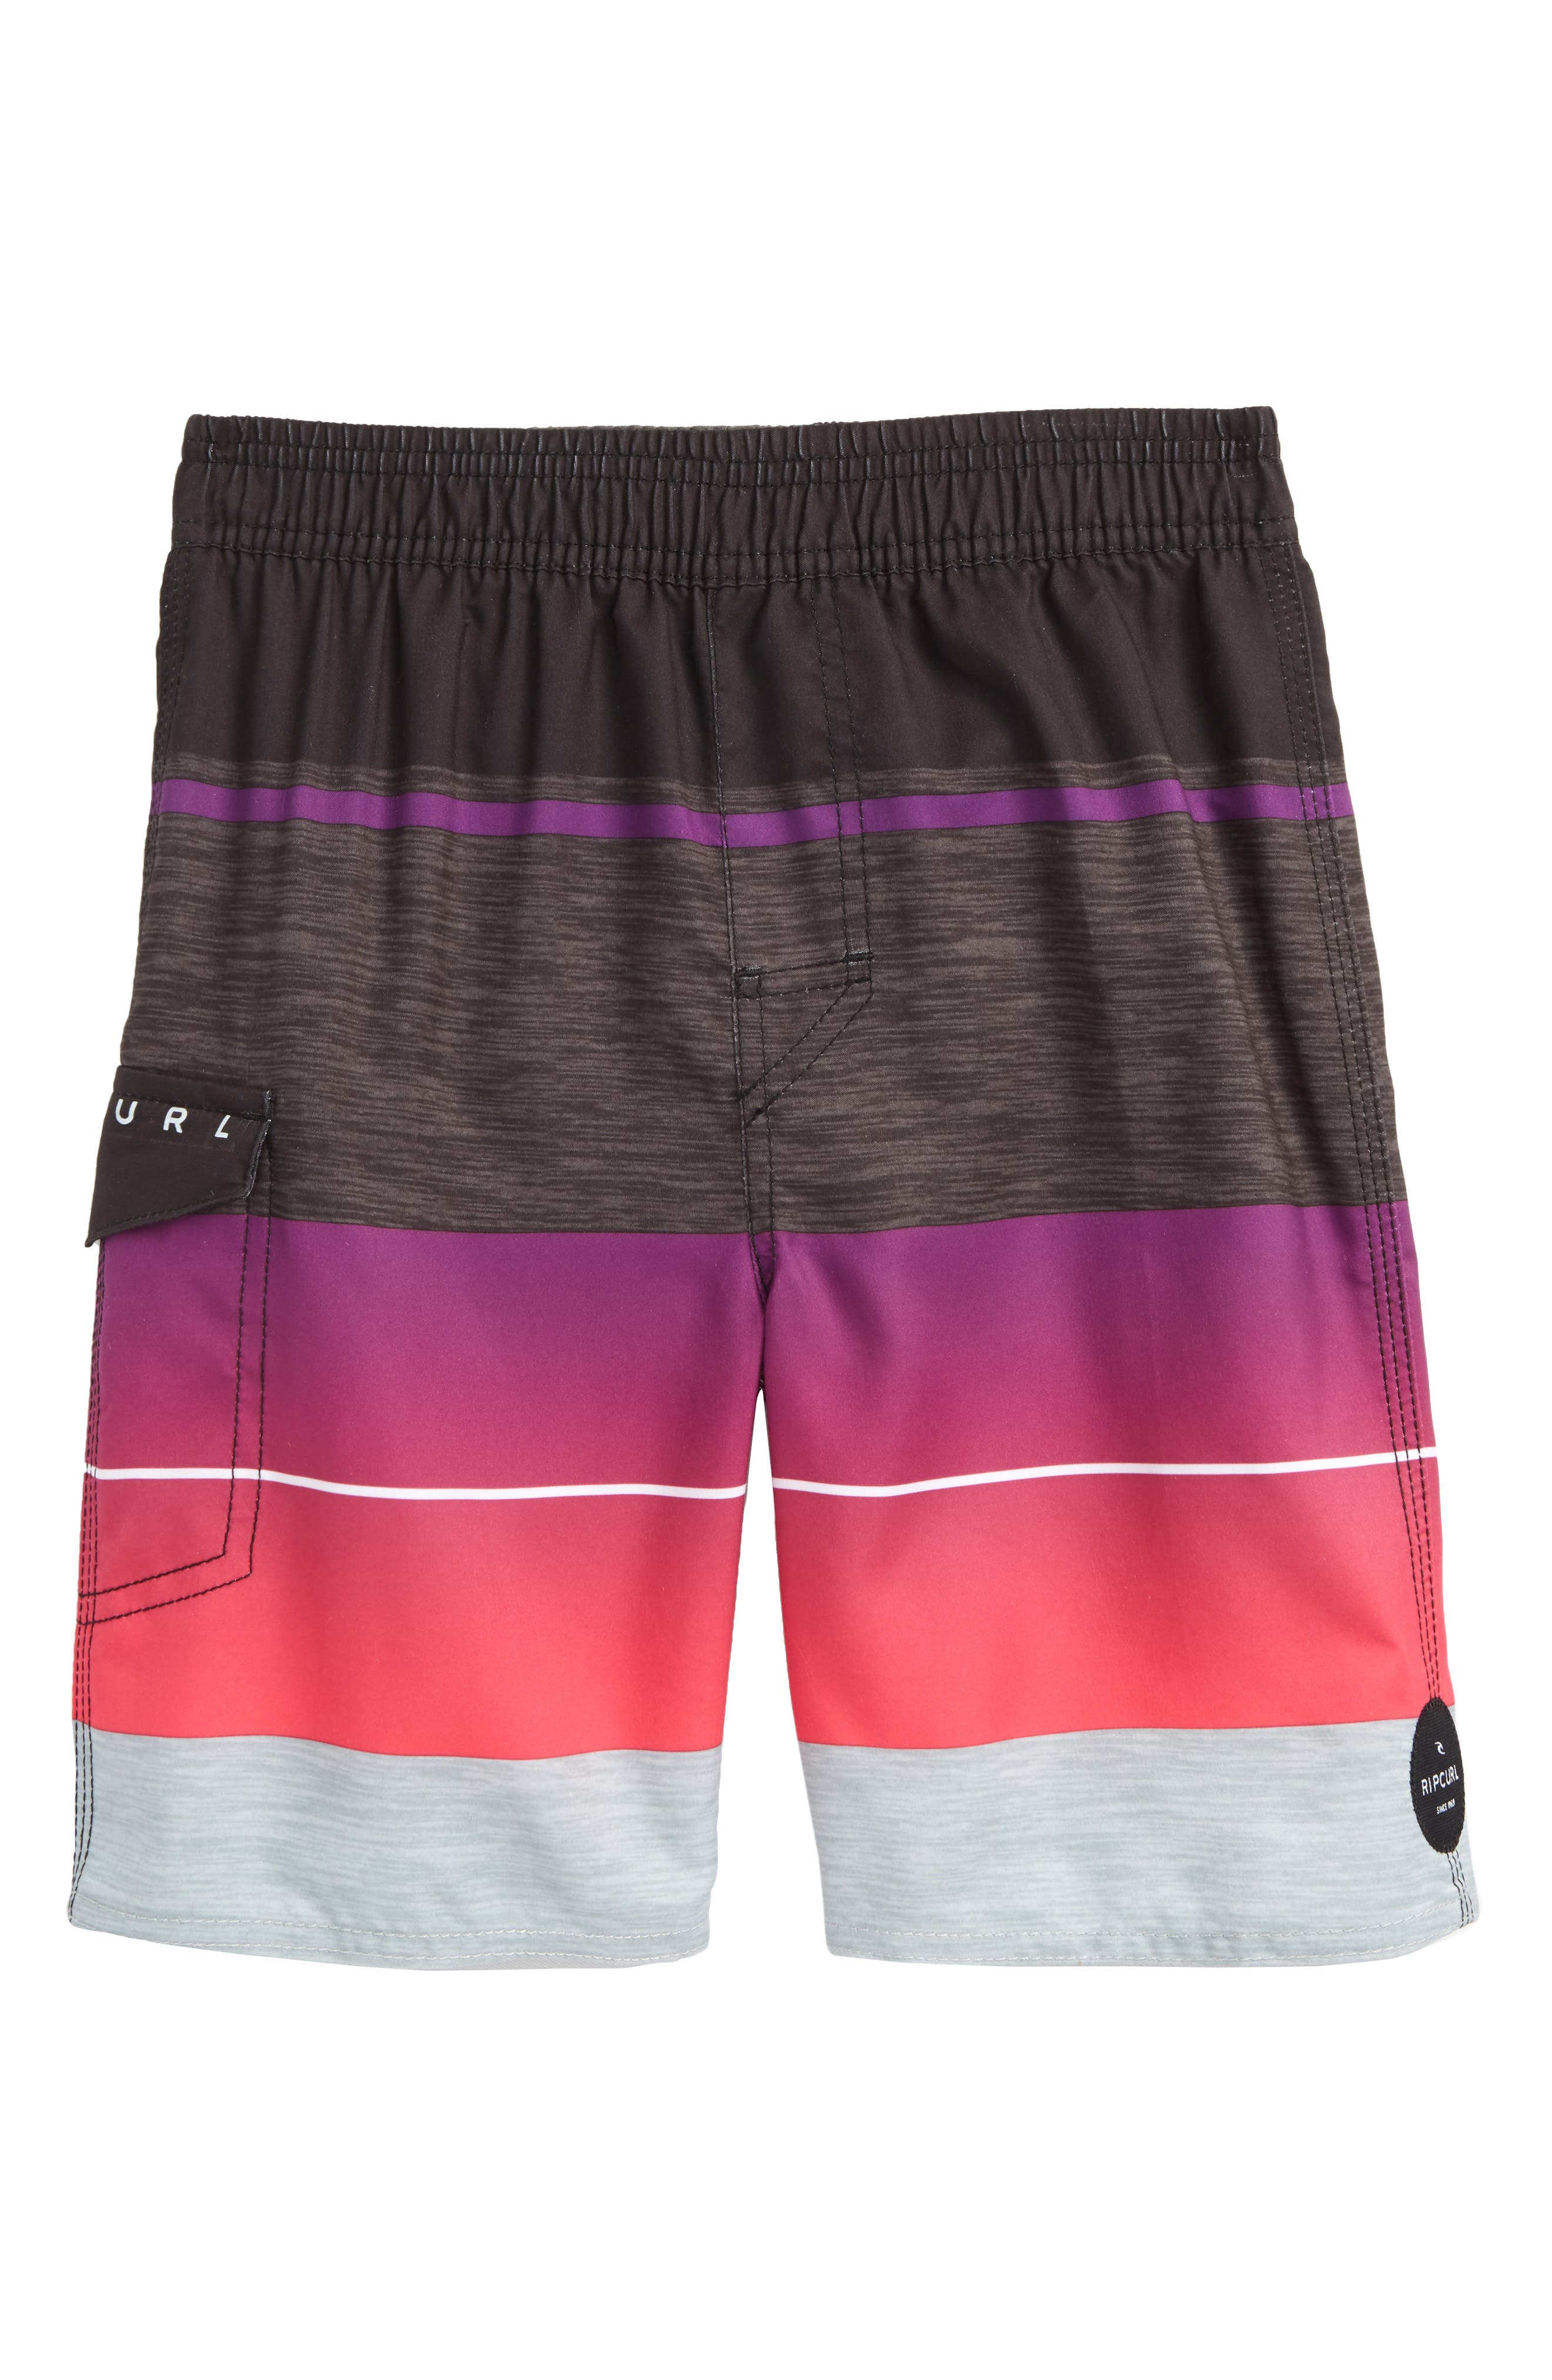 Mirage Eclipse Volley Shorts,                         Main,                         color, Pink